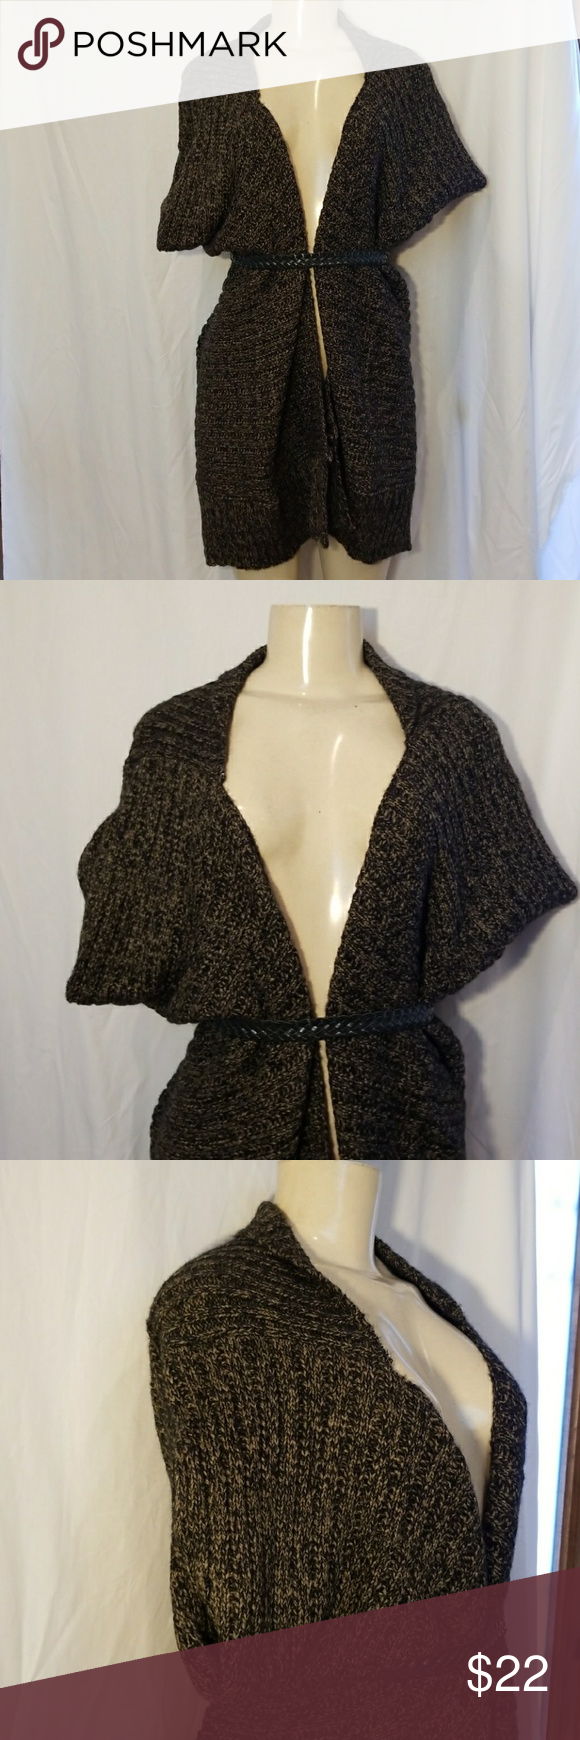 New! Black and Brown knitted shrug cardigan